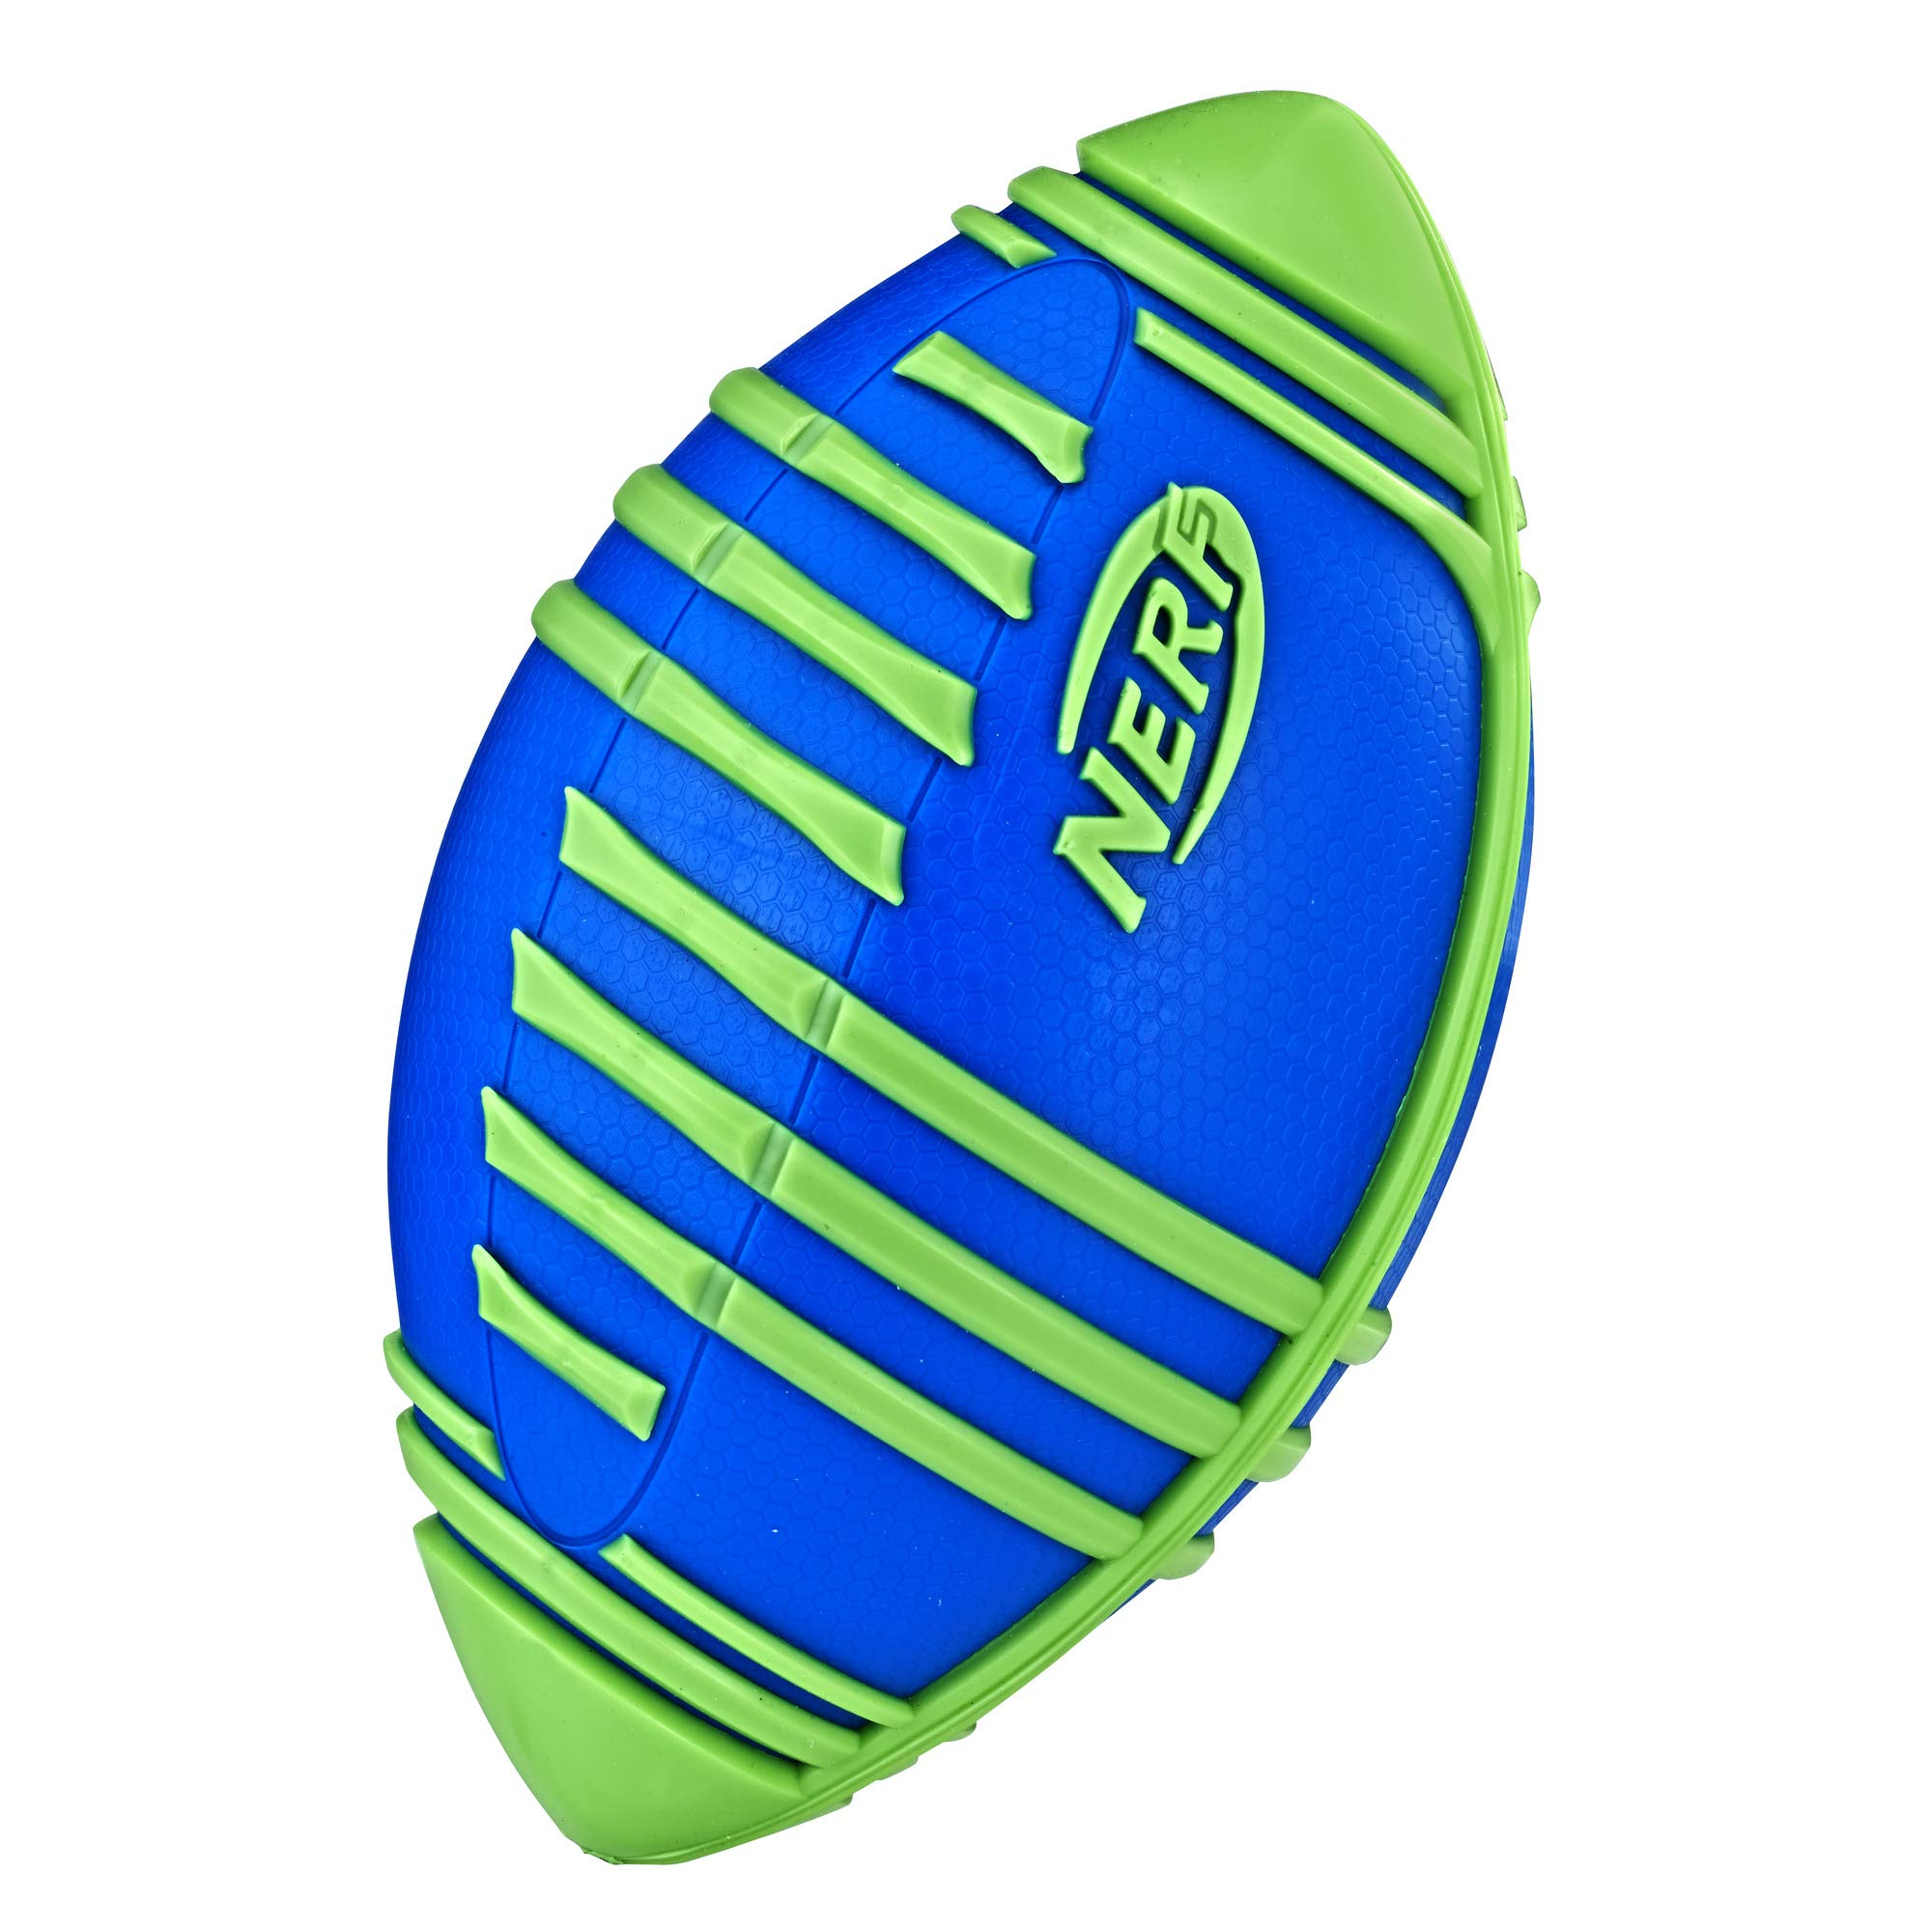 Nerf Sports Weather Blitz Football (blue) by NERF